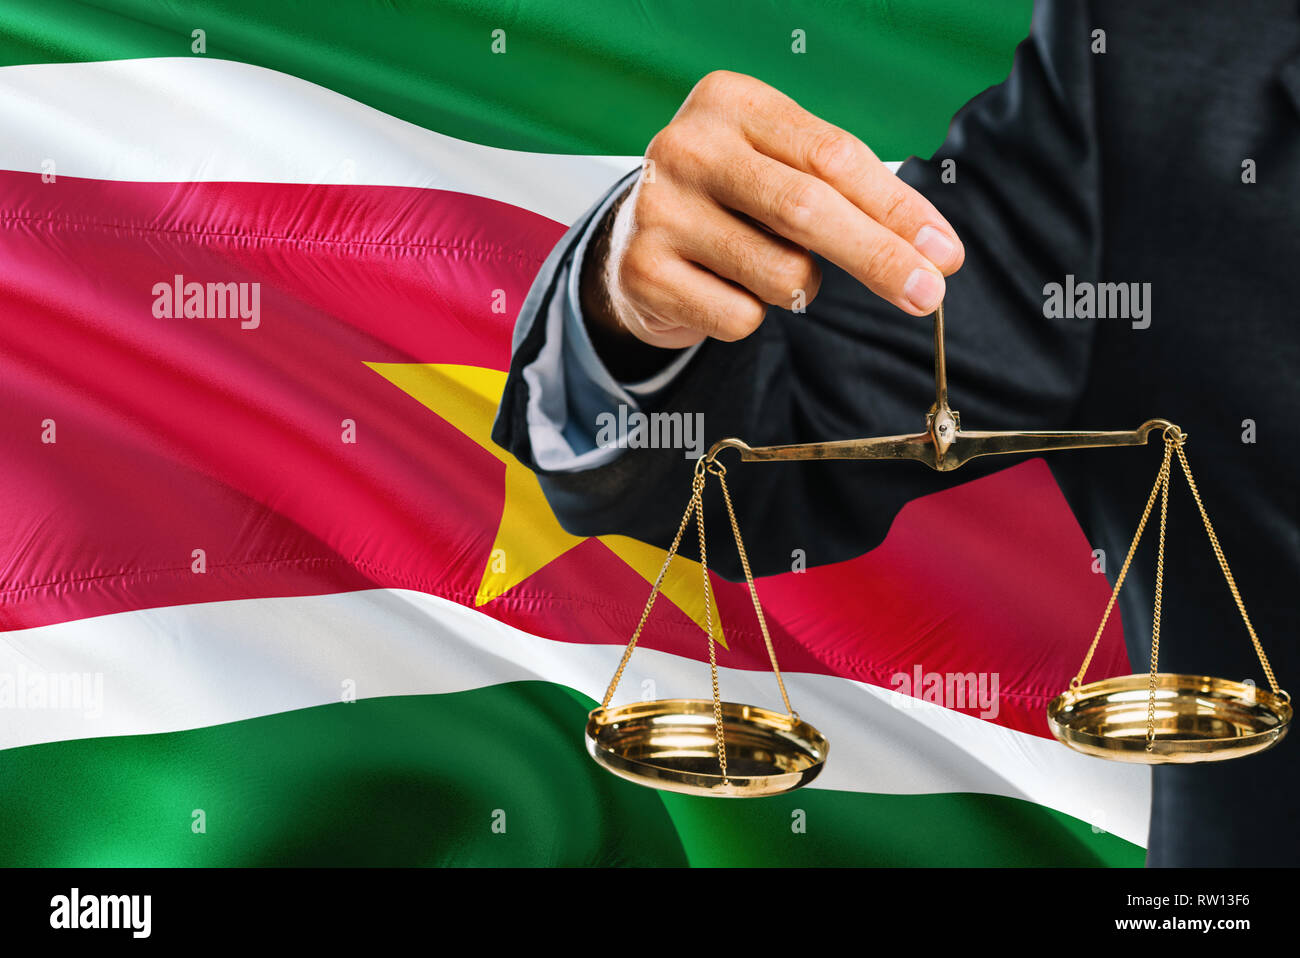 Surinamese Judge is holding golden scales of justice with Suriname waving flag background. Equality theme and legal concept. - Stock Image